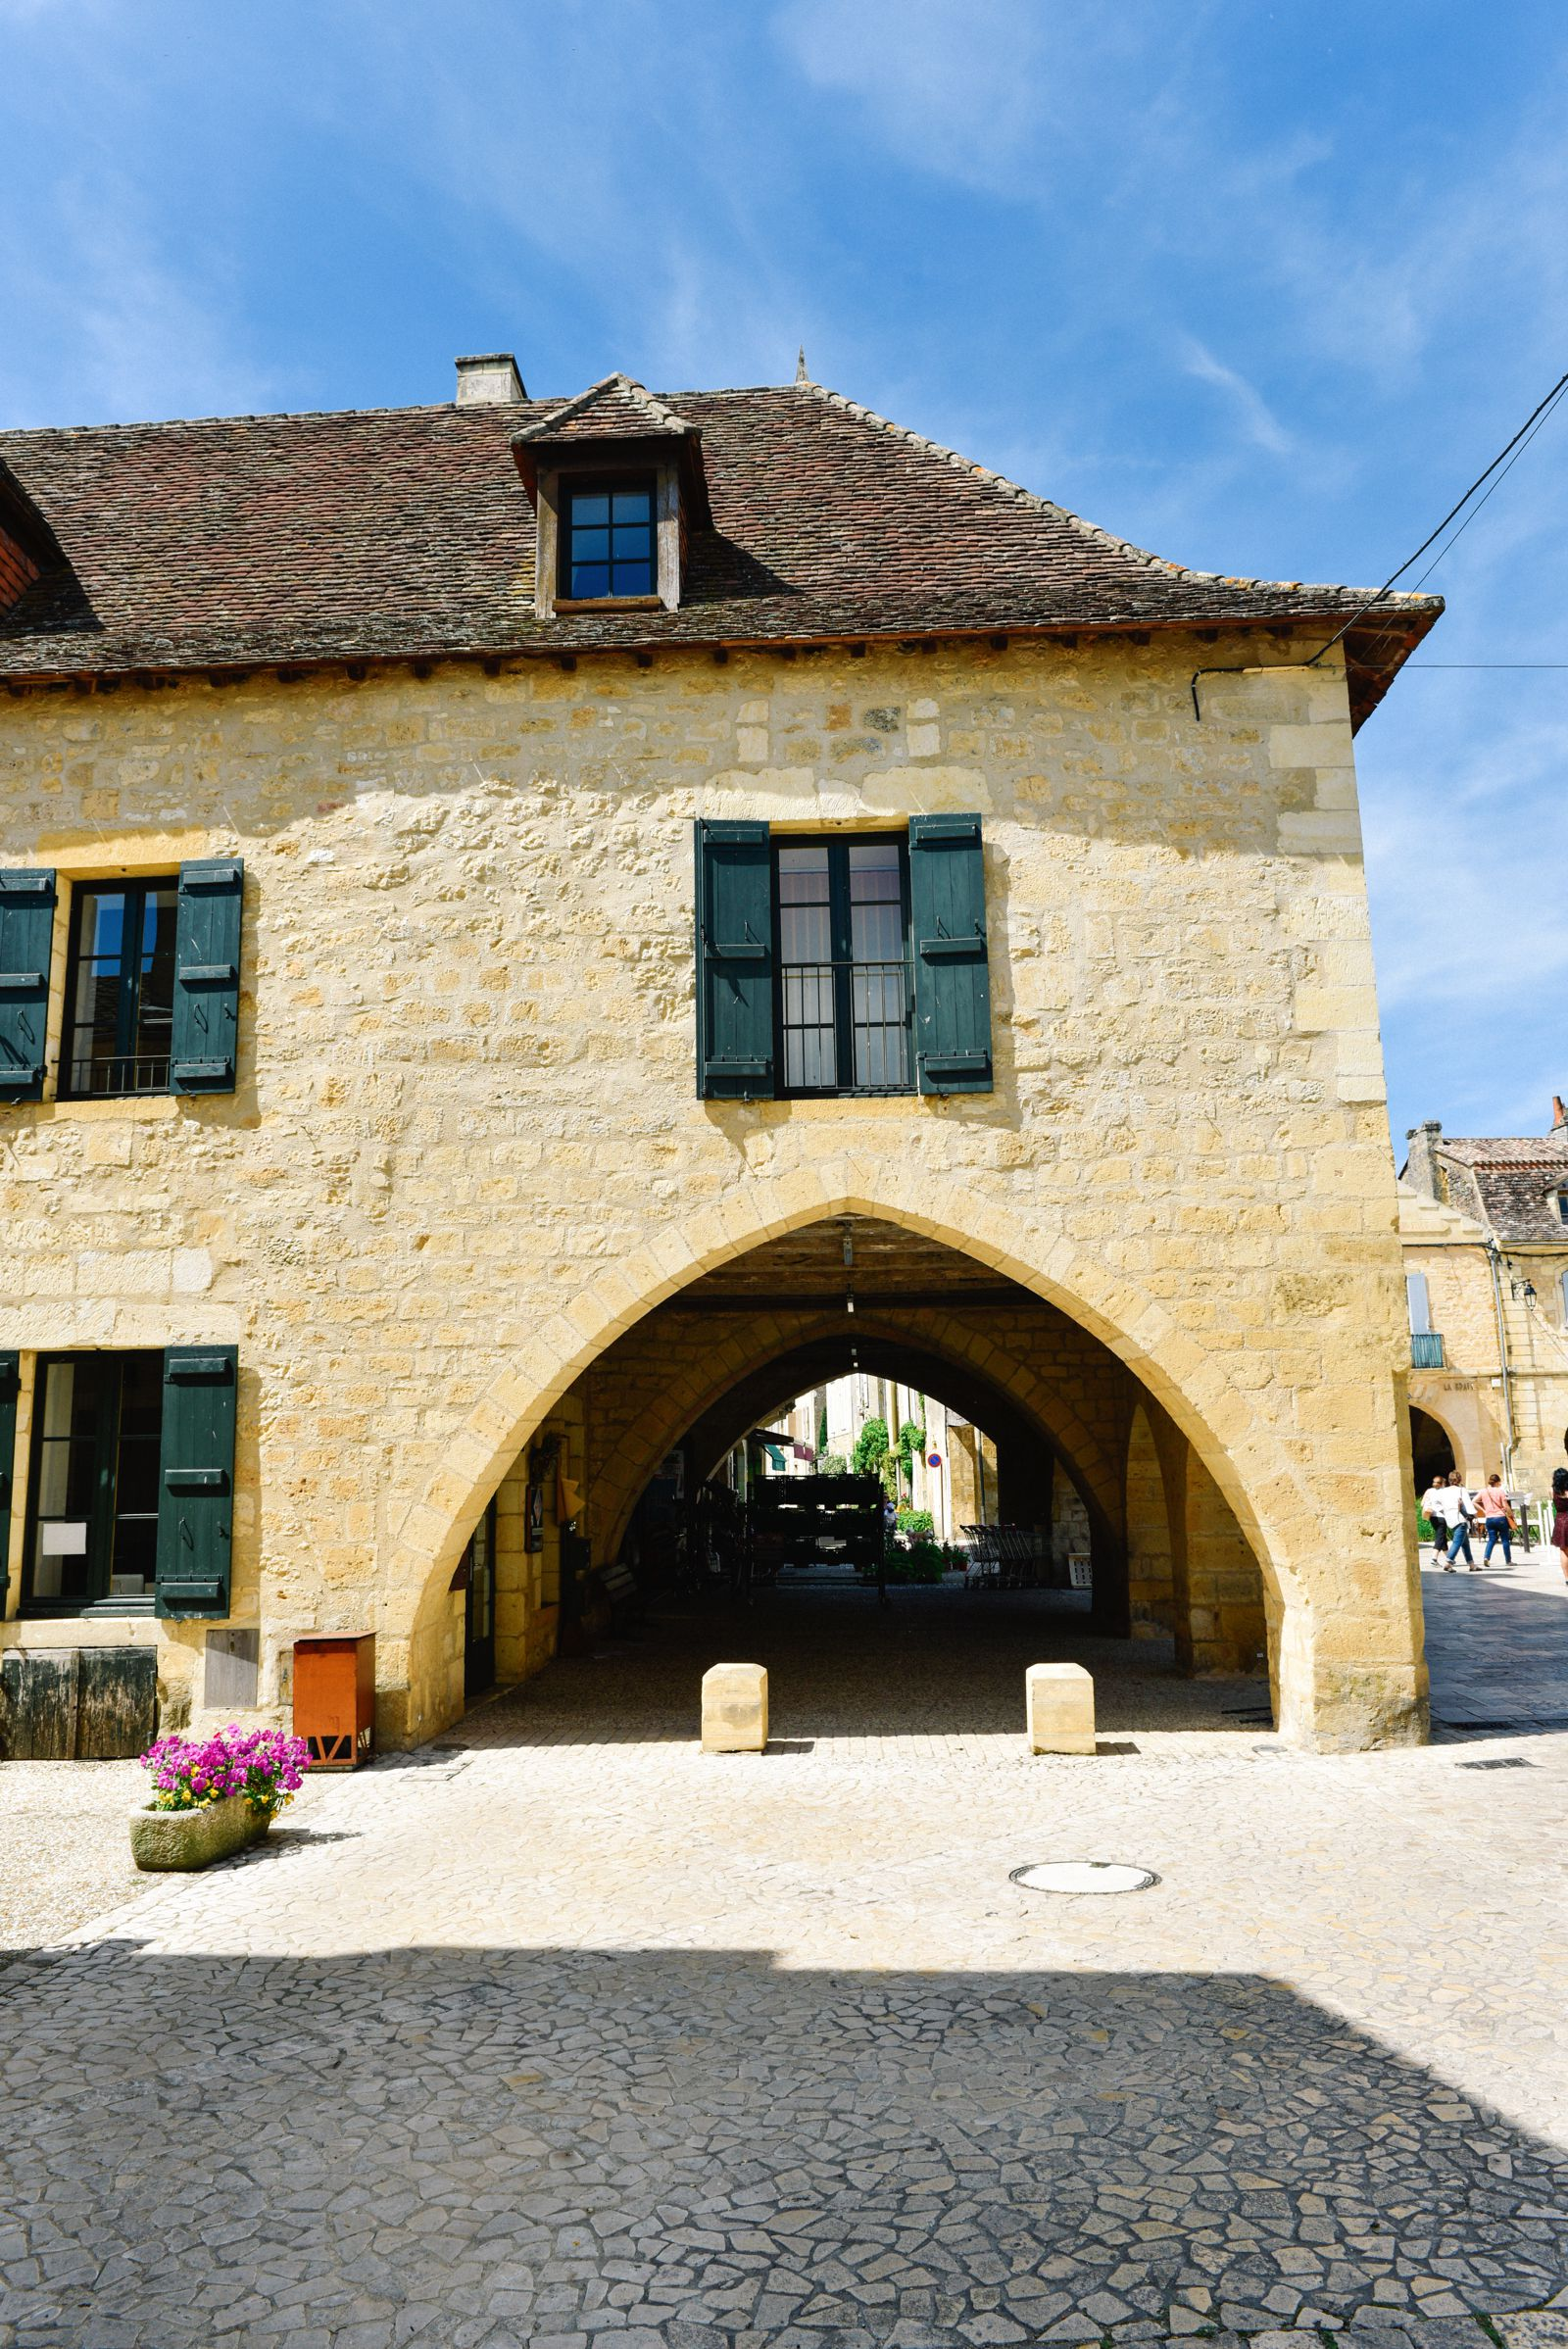 Mornings In The French City Of Sarlat And Afternoons In The Village Of Beaumont-du-Périgord... (58)